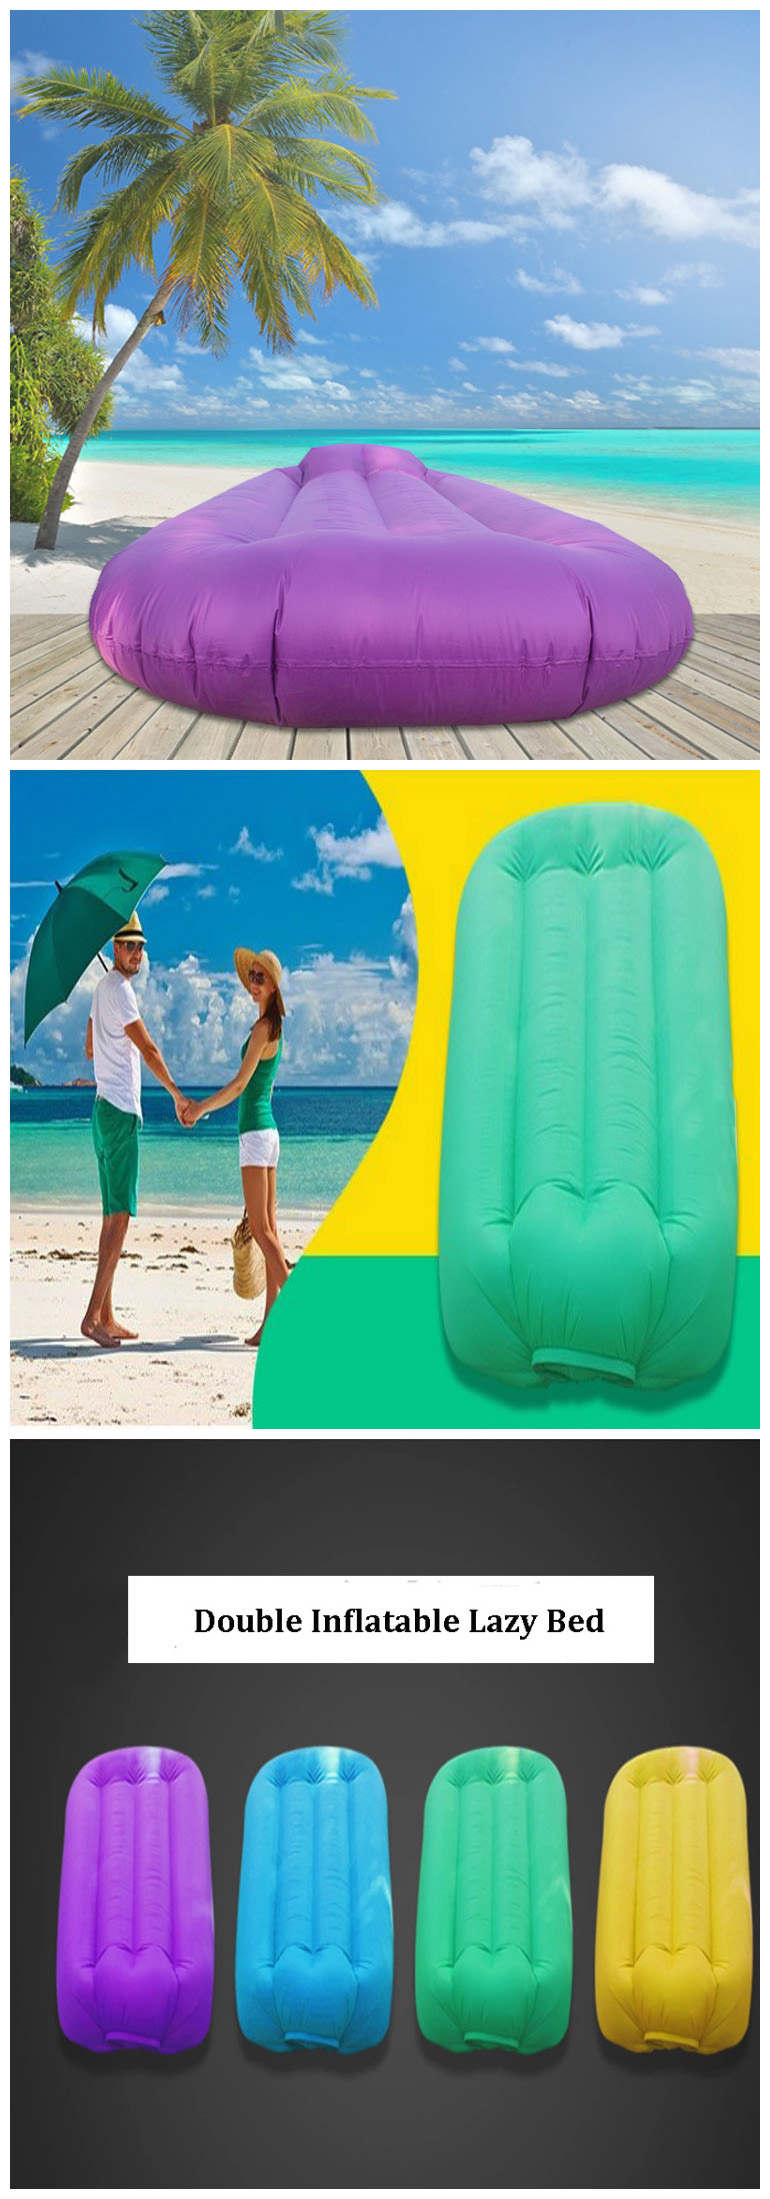 IPRee® 210T Nylon Fast Air Inflatable Lazy Bed Portable Mini Double Sleeping Sofa Max 250kg Load